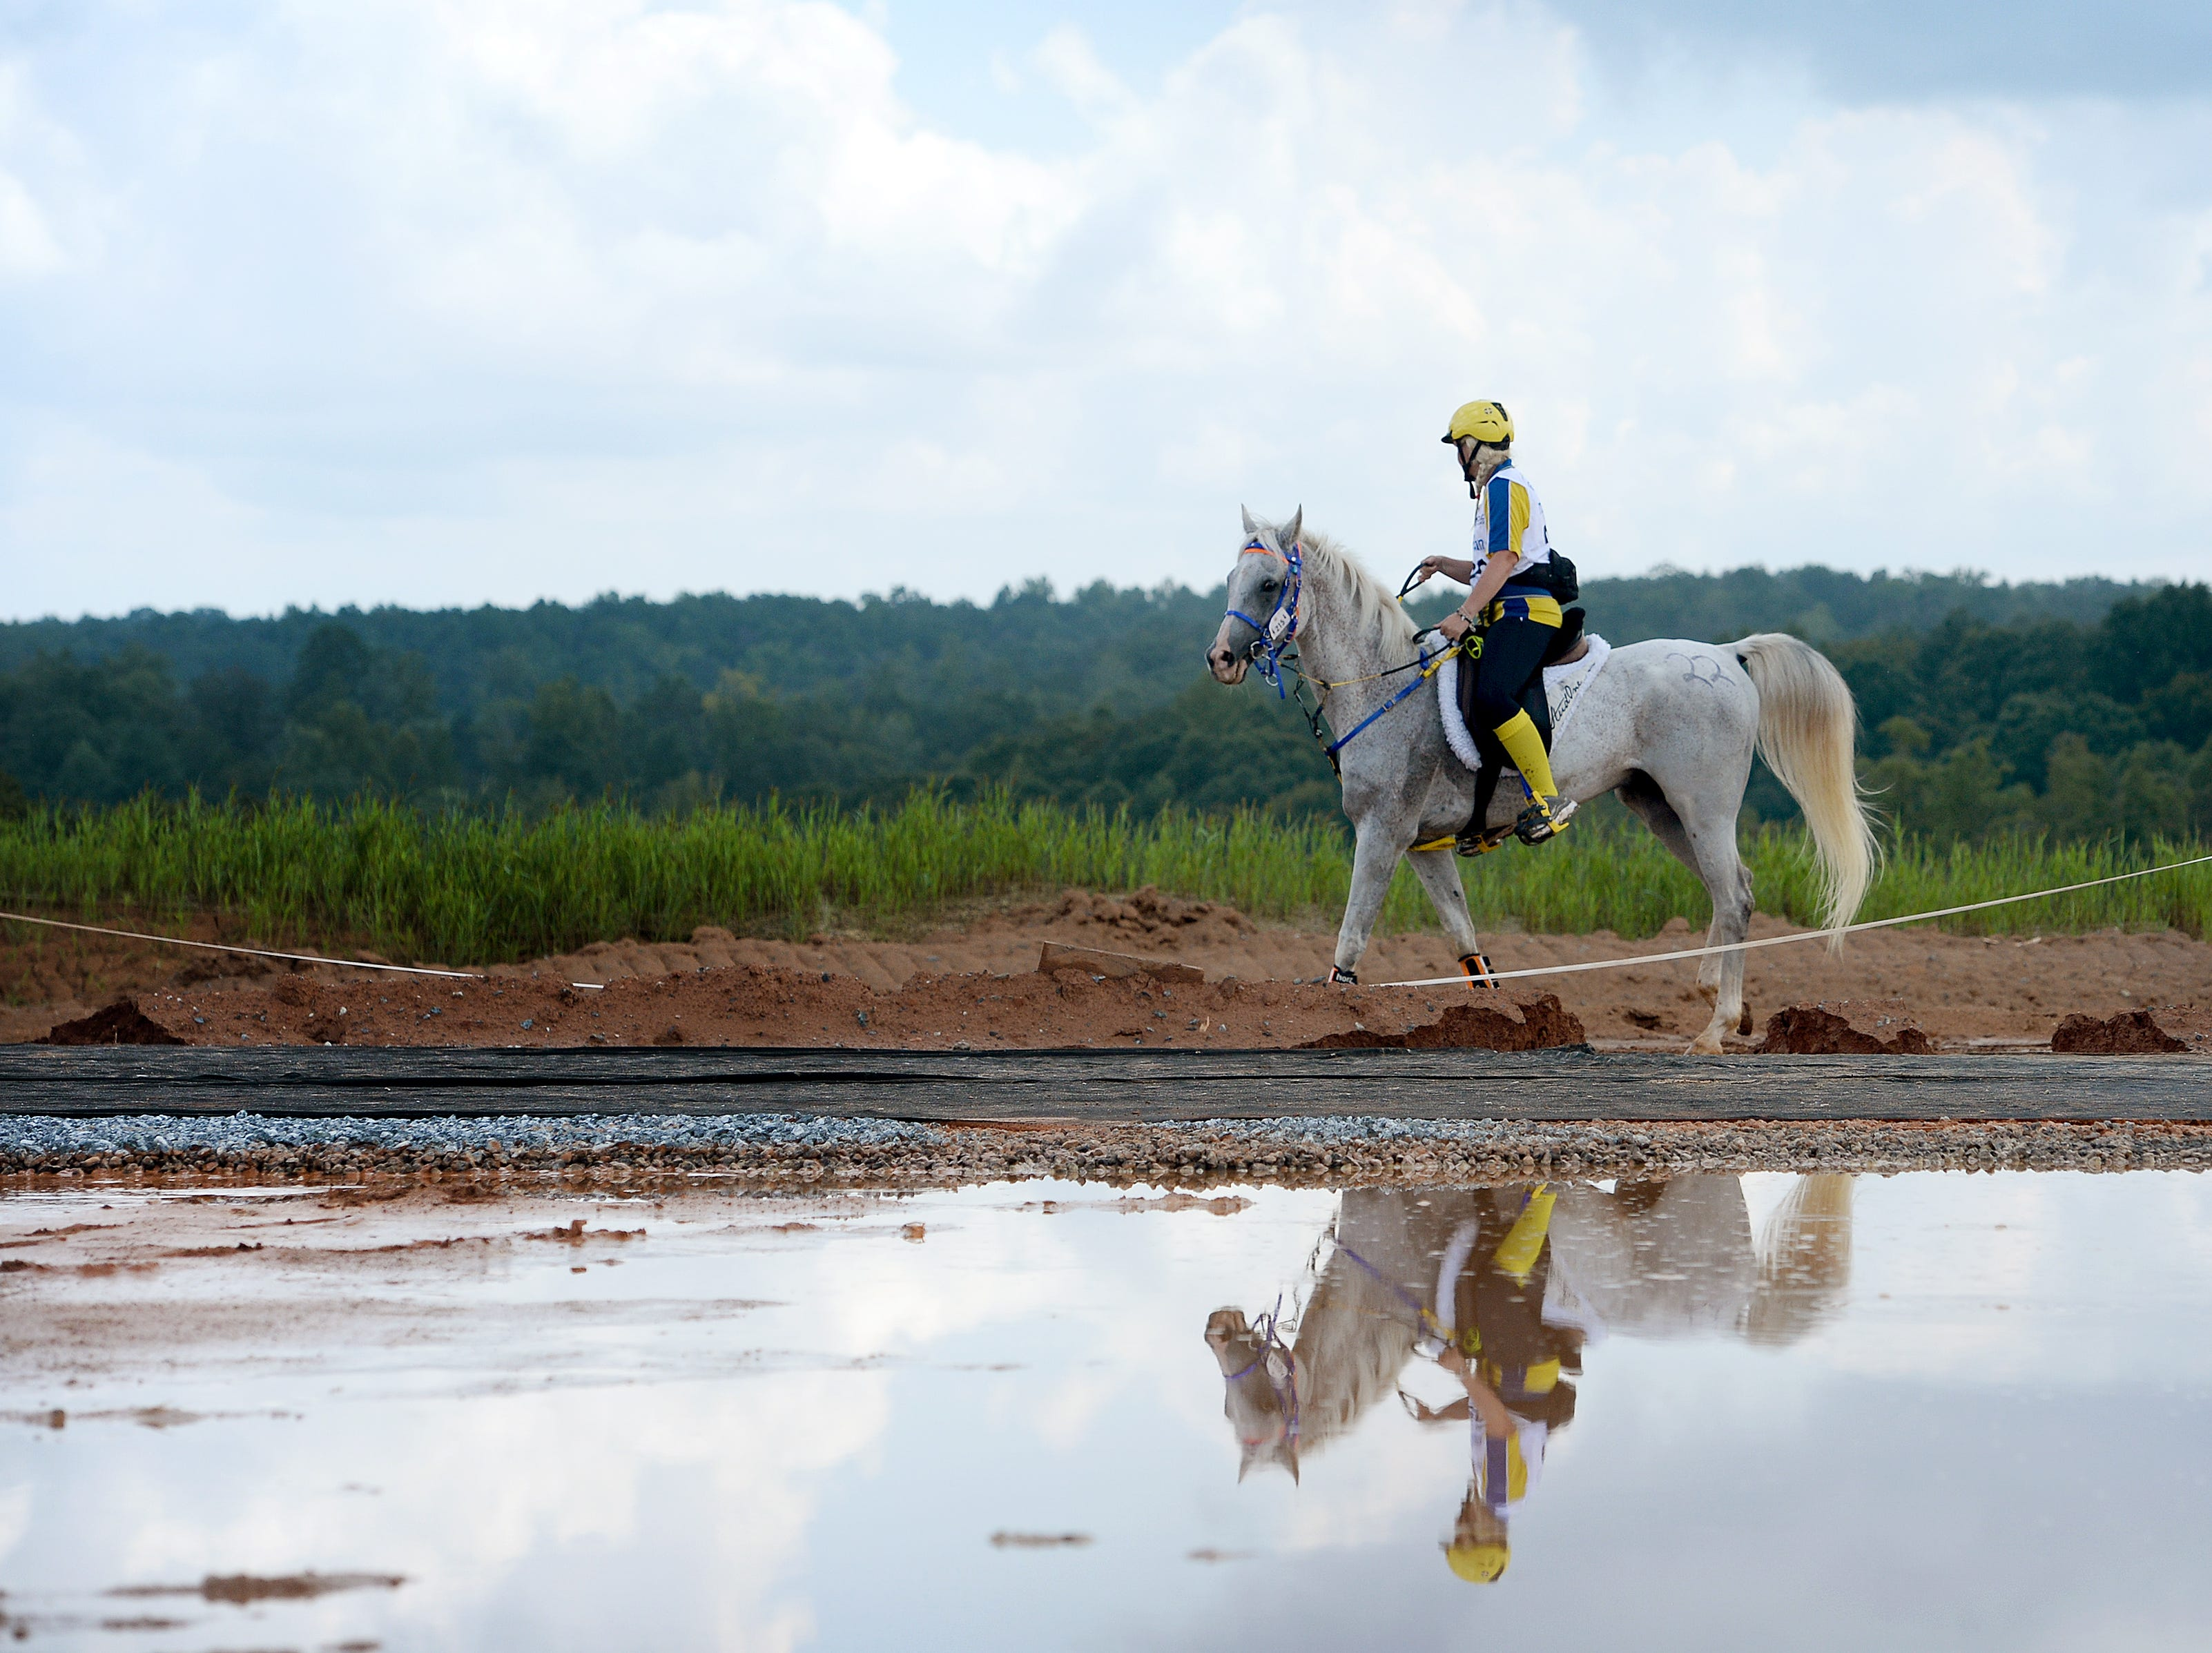 A Swedish rider, Yvonne Ekelund, sets out on her horse, Hedonizt, for another lap of the Endurance race during the FEI World Equestrian Games at the Tryon International Equestrian Center on Sept. 12, 2018.